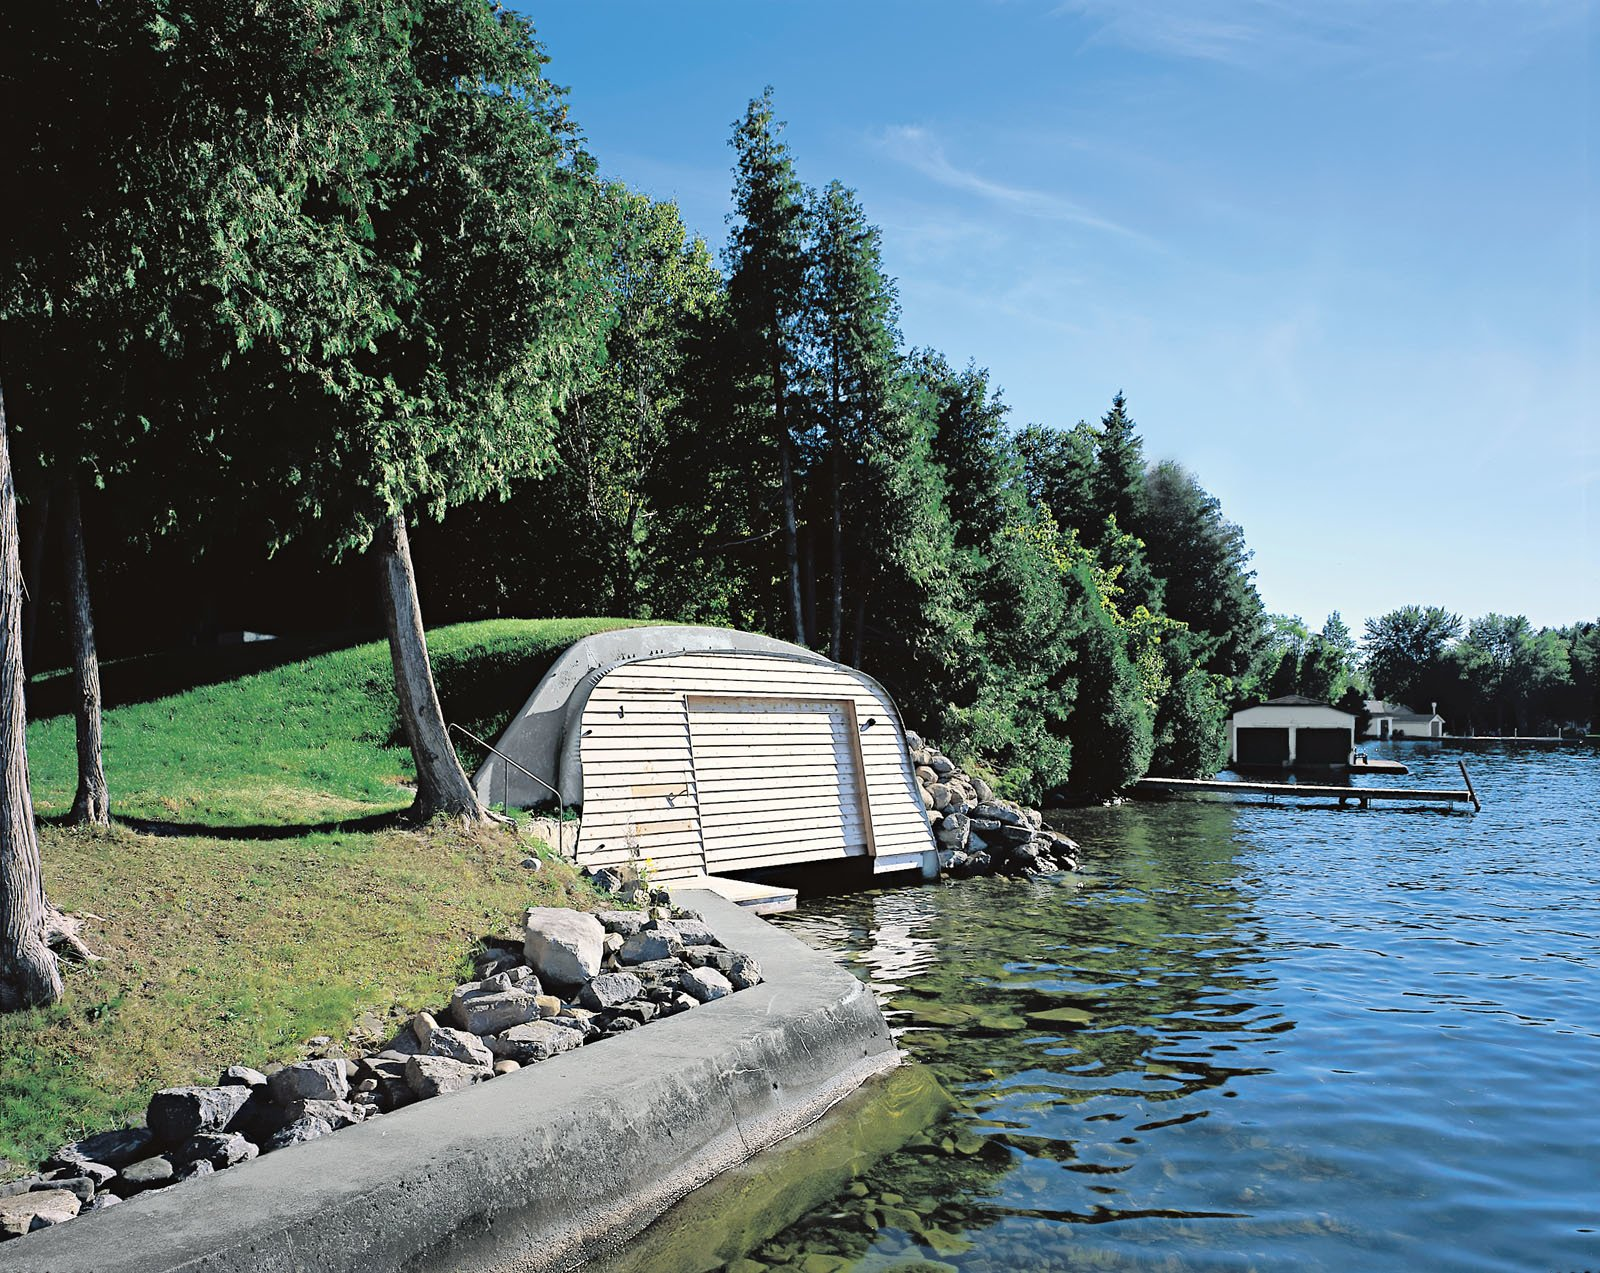 View of the boathouse from the lake.  Photo 3 of 3 in About a Boat